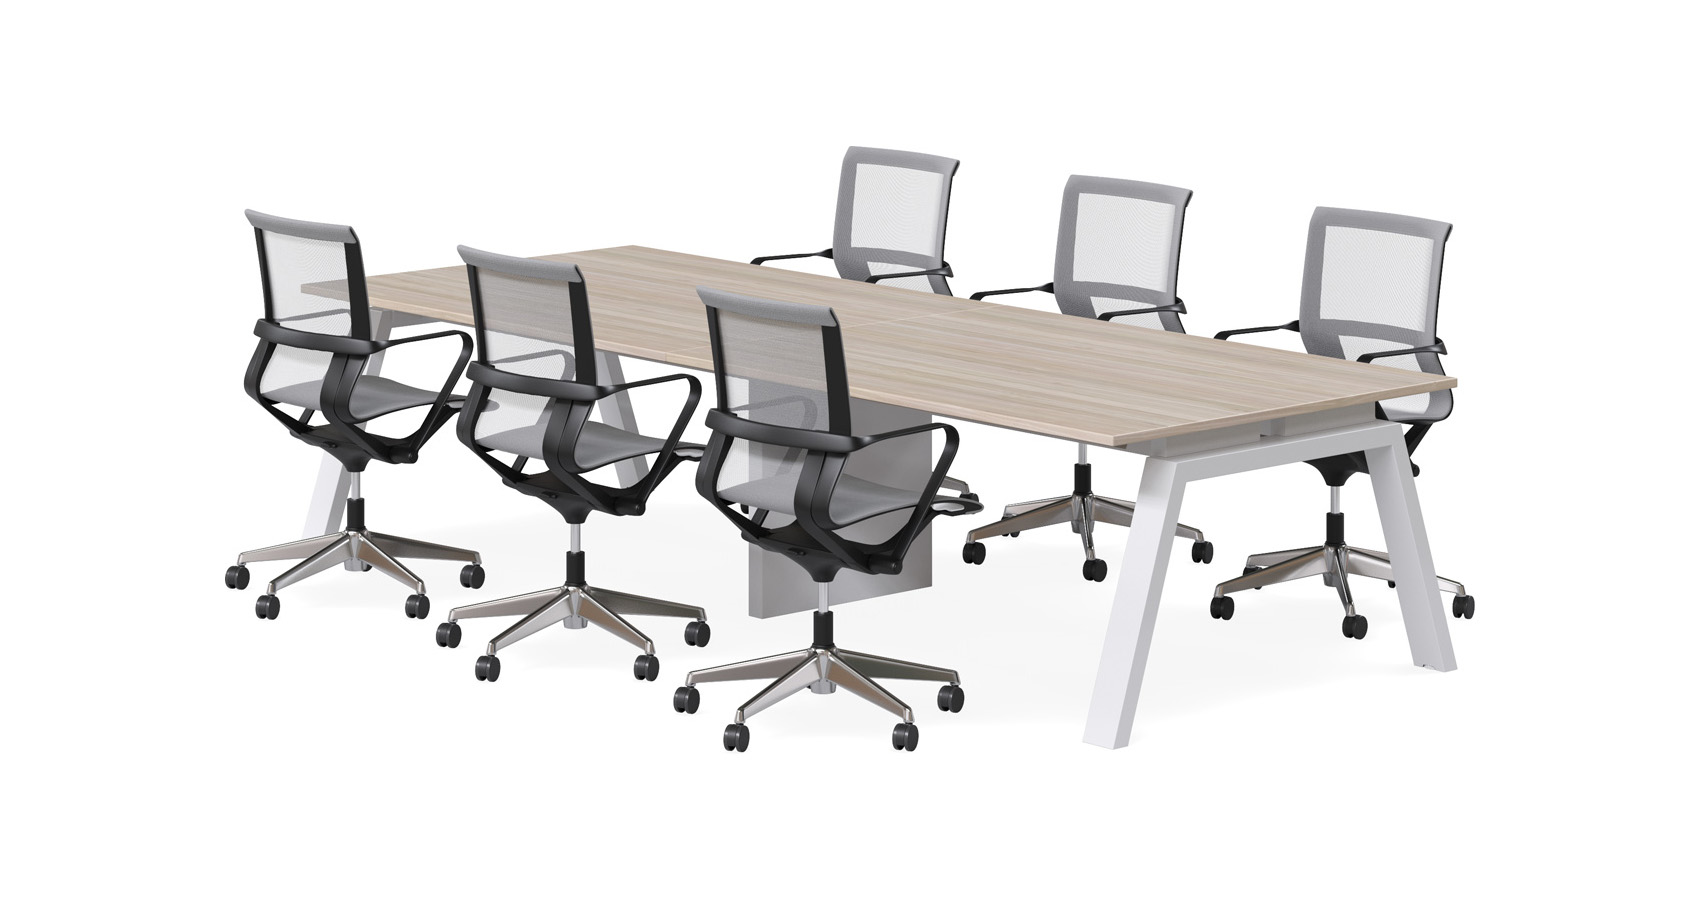 Keywork Meeting 2 piece White Frame and Zed Chairs